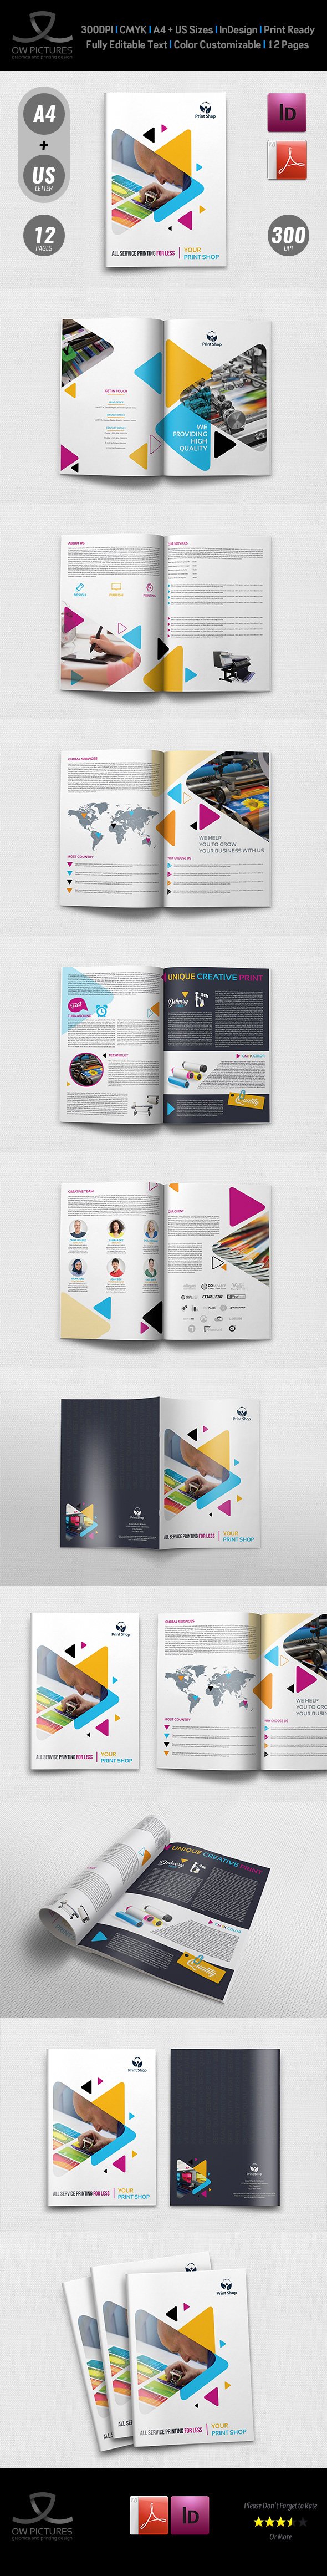 Print Shop Brochure Template 12 Pages On Behance